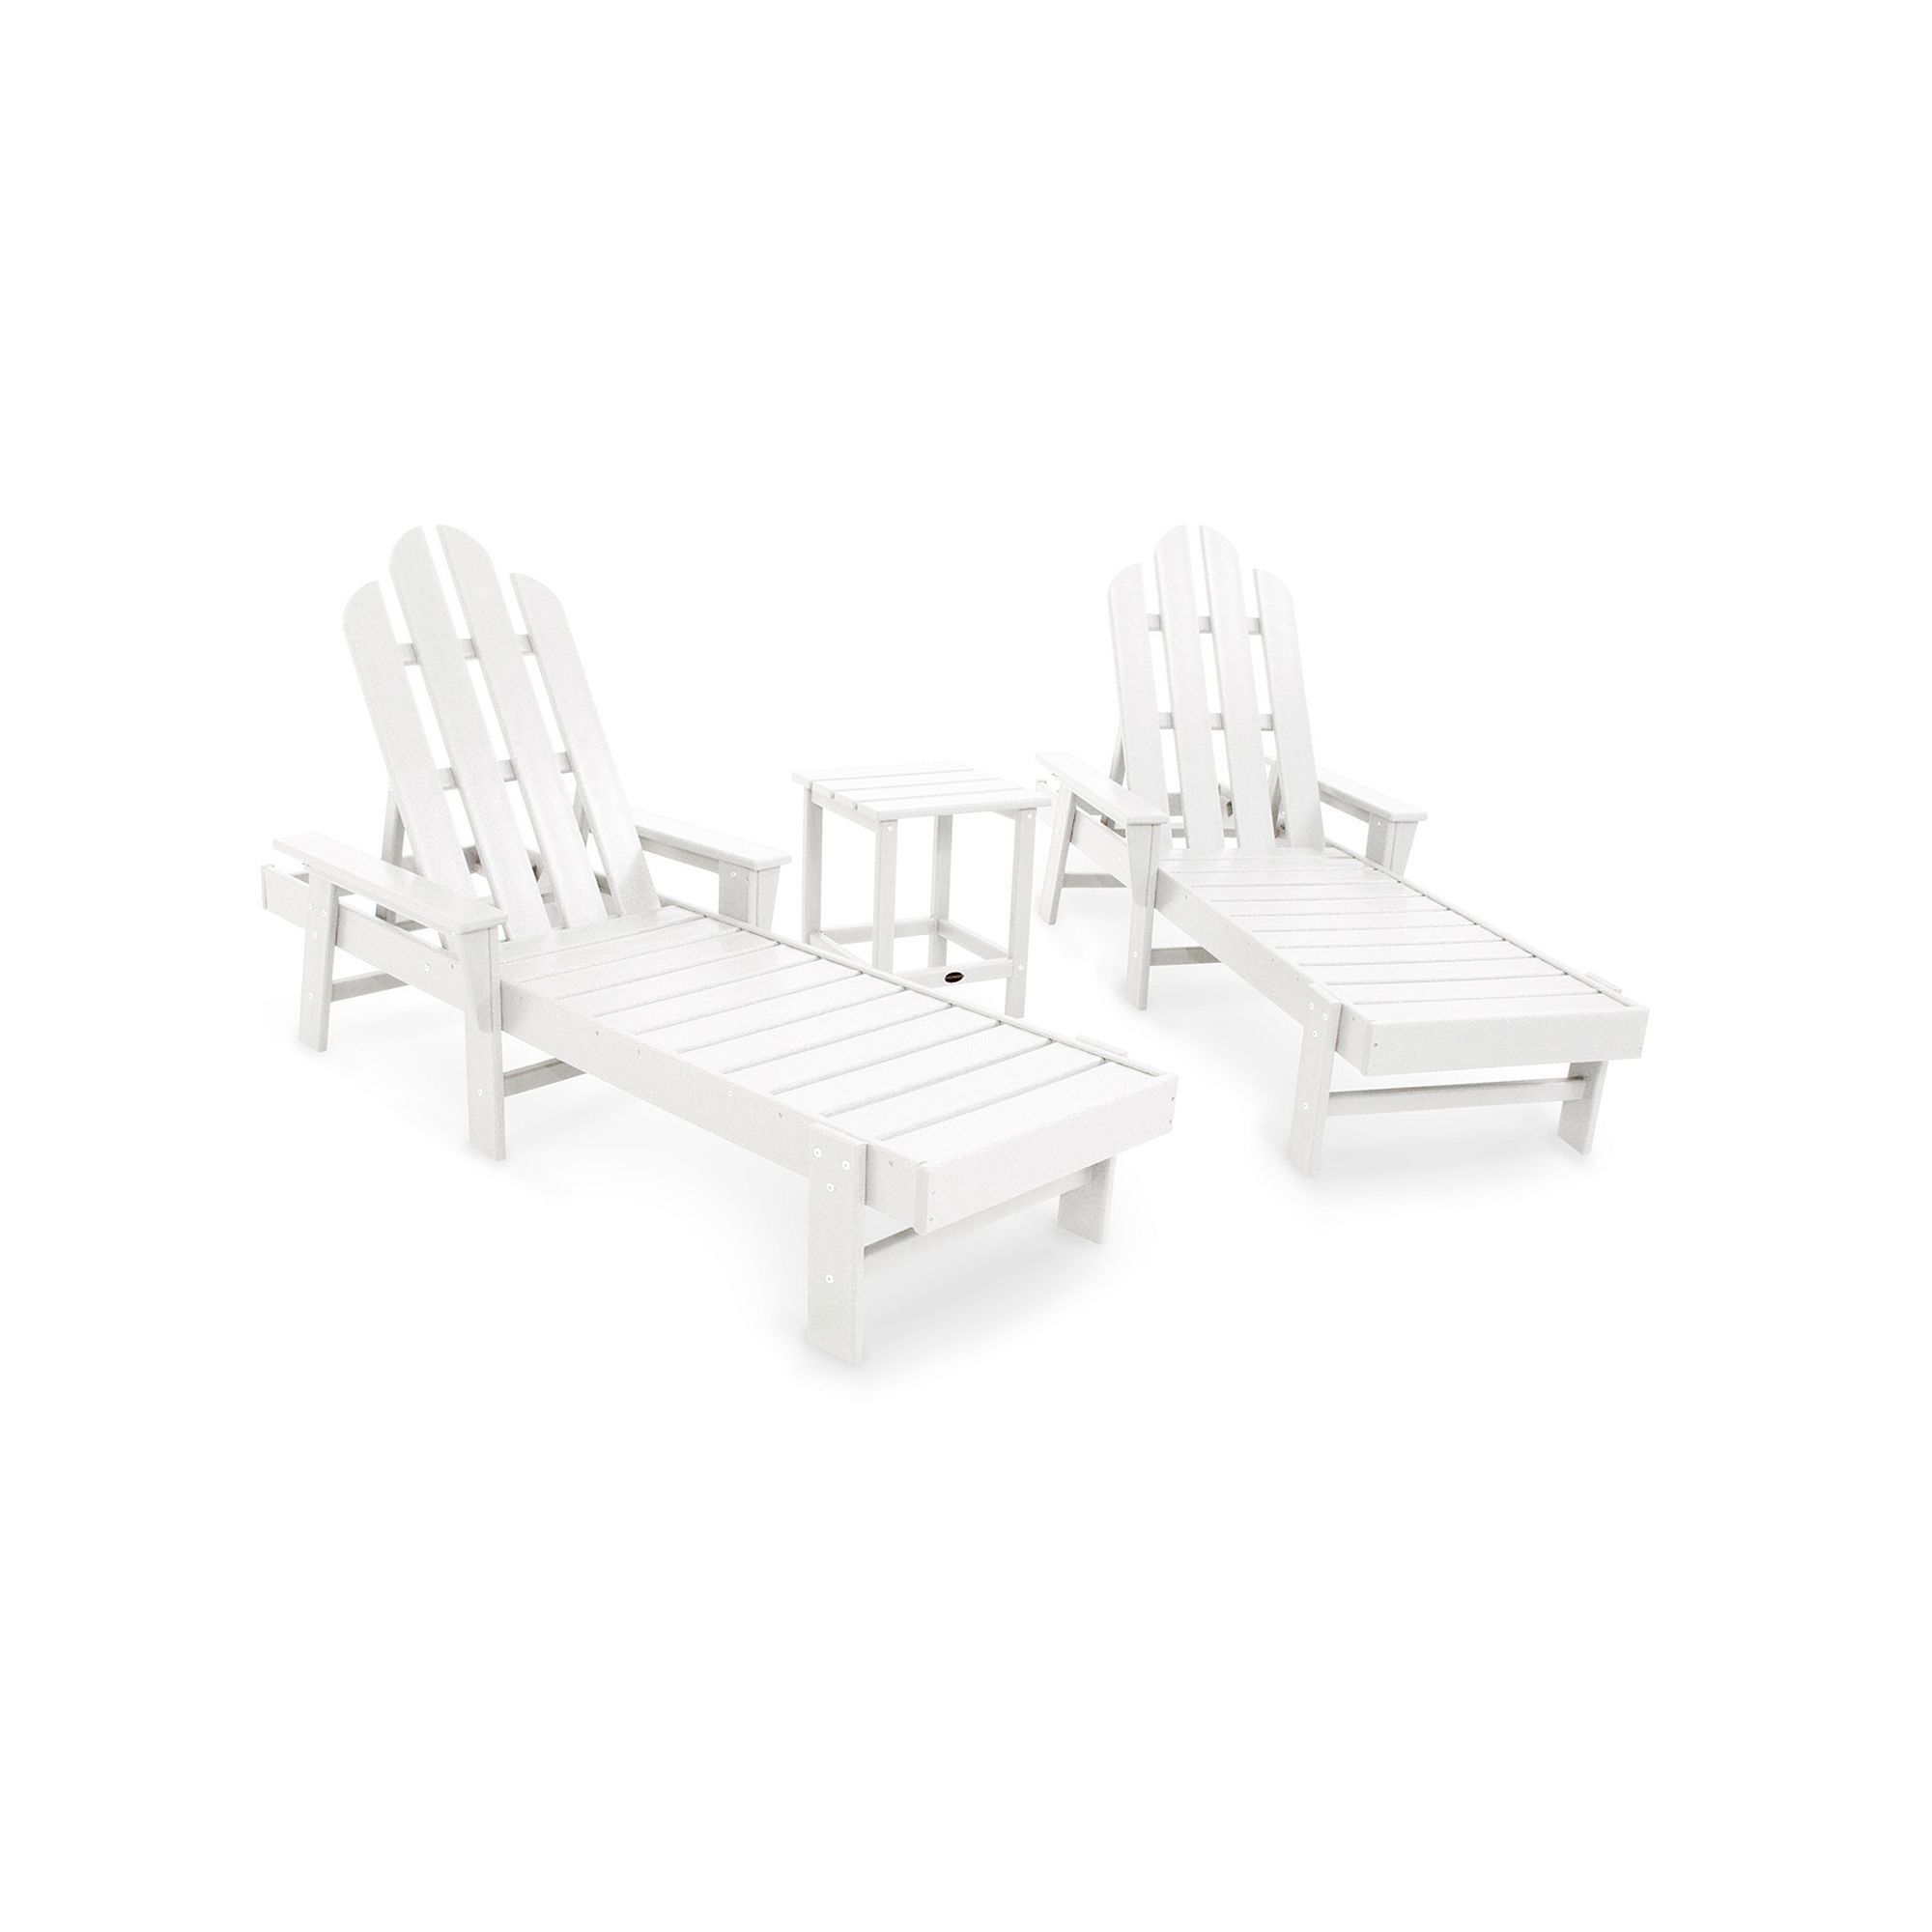 Polywood® 2 Piece Long Island Outdoor Chaise Lounge Chair U0026 Side Table Set,